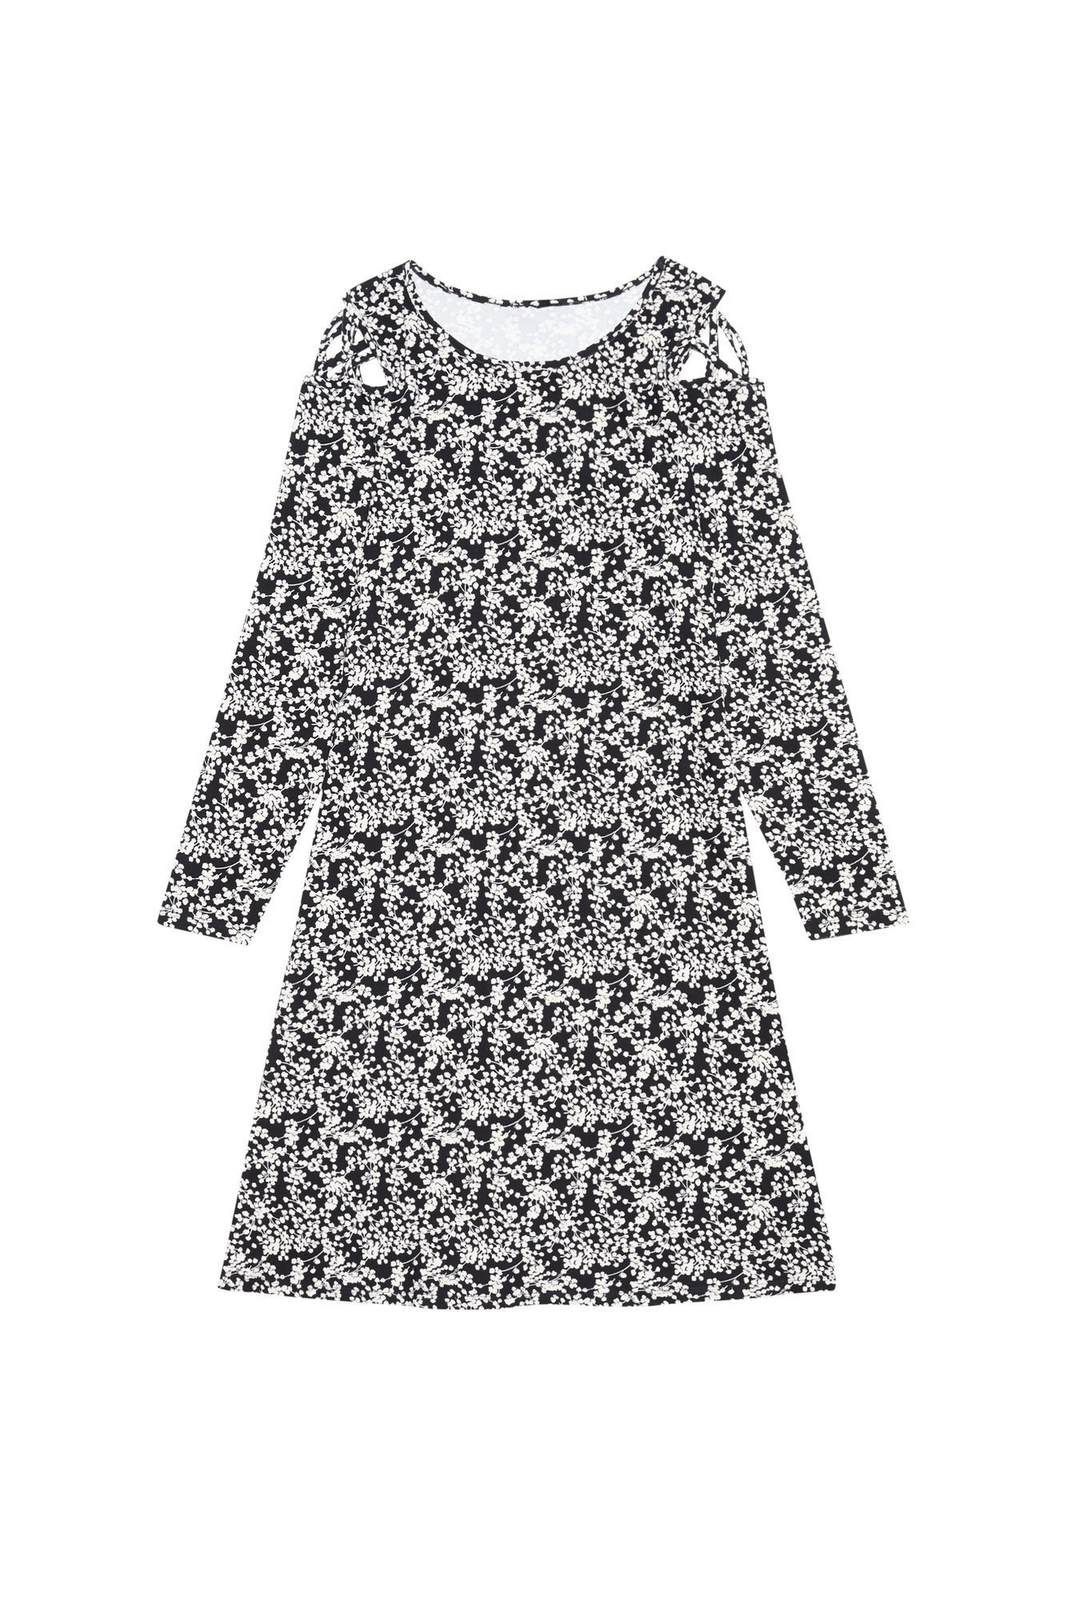 Moodo spring dress with decorative cuts